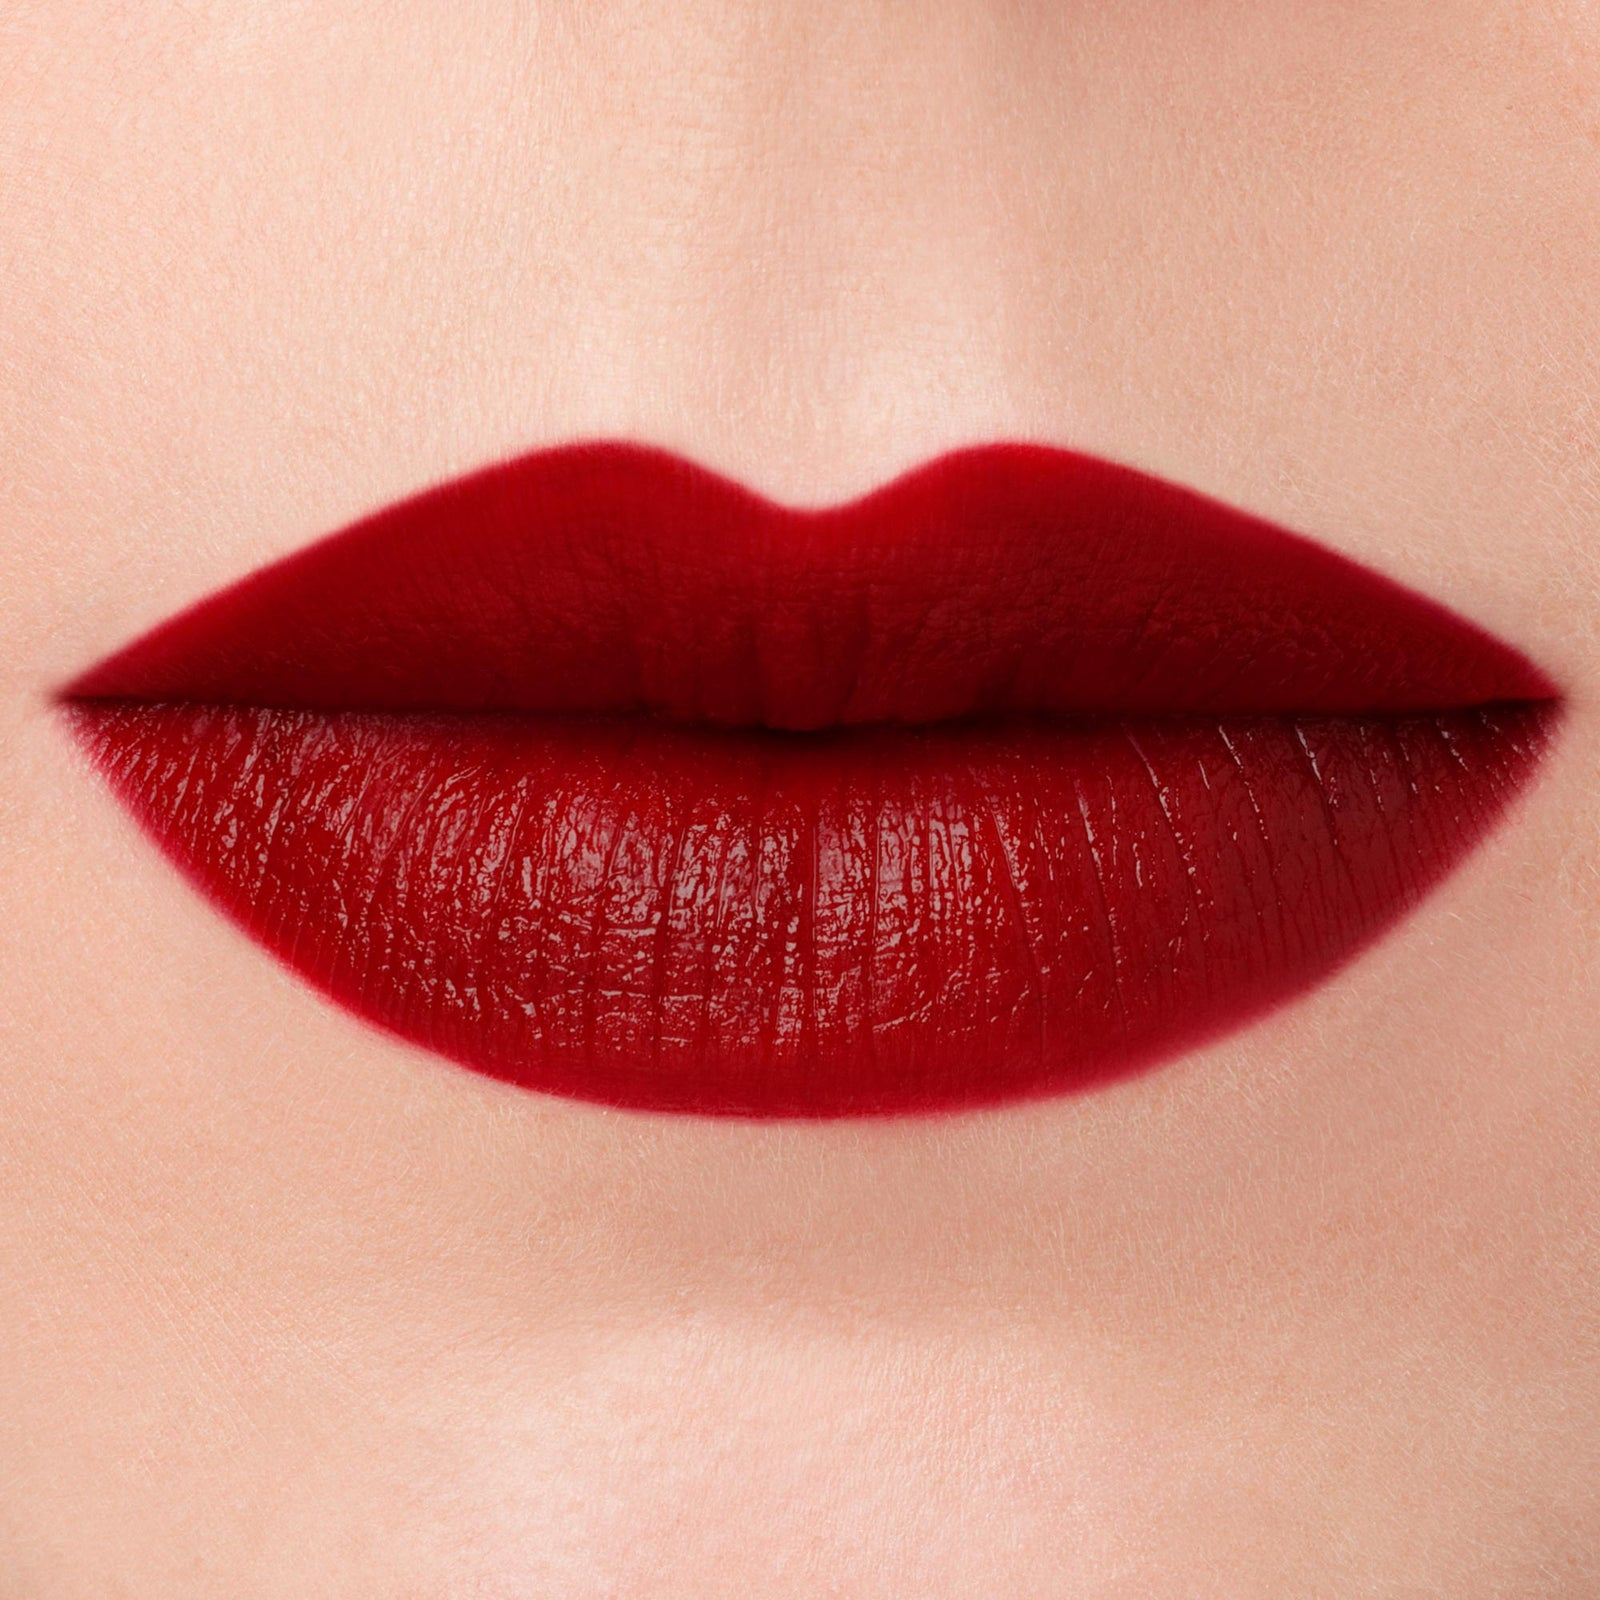 Written in Blood | Forbidden Lipstick - Rituel de Fille